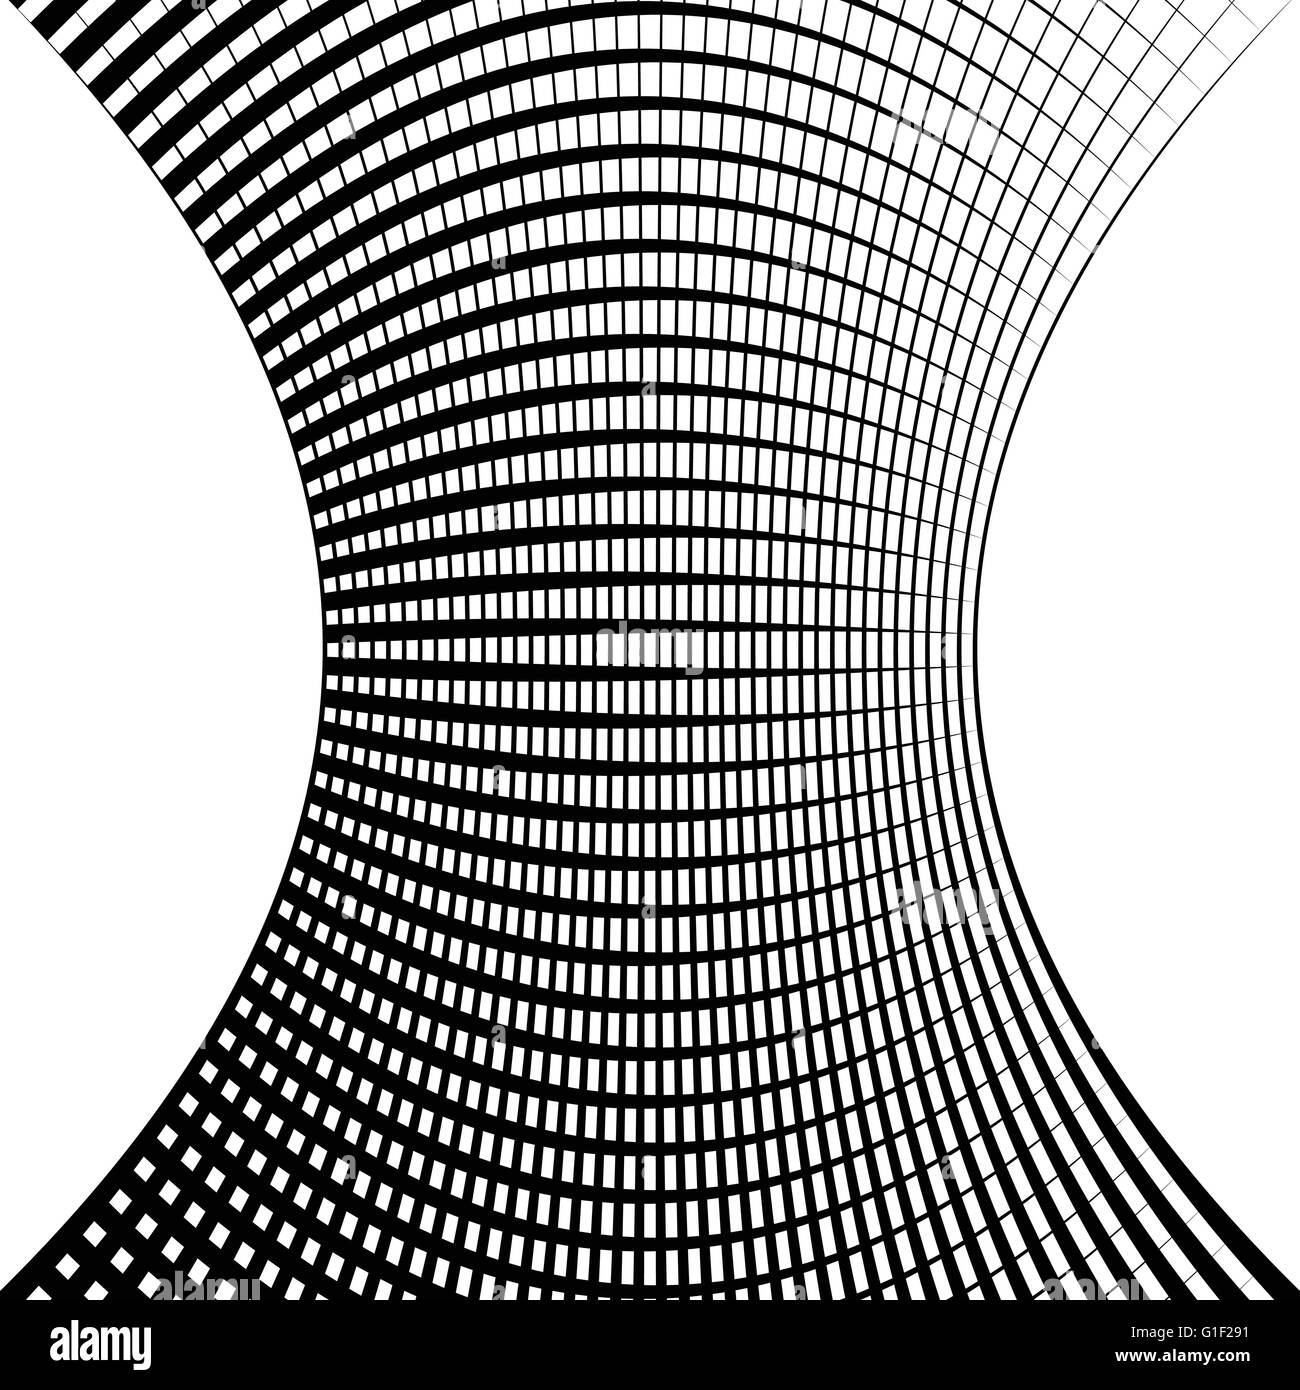 Grid Mesh Geometric Pattern Intersecting Lines Abstract Geometric Stock Photo Royalty Free